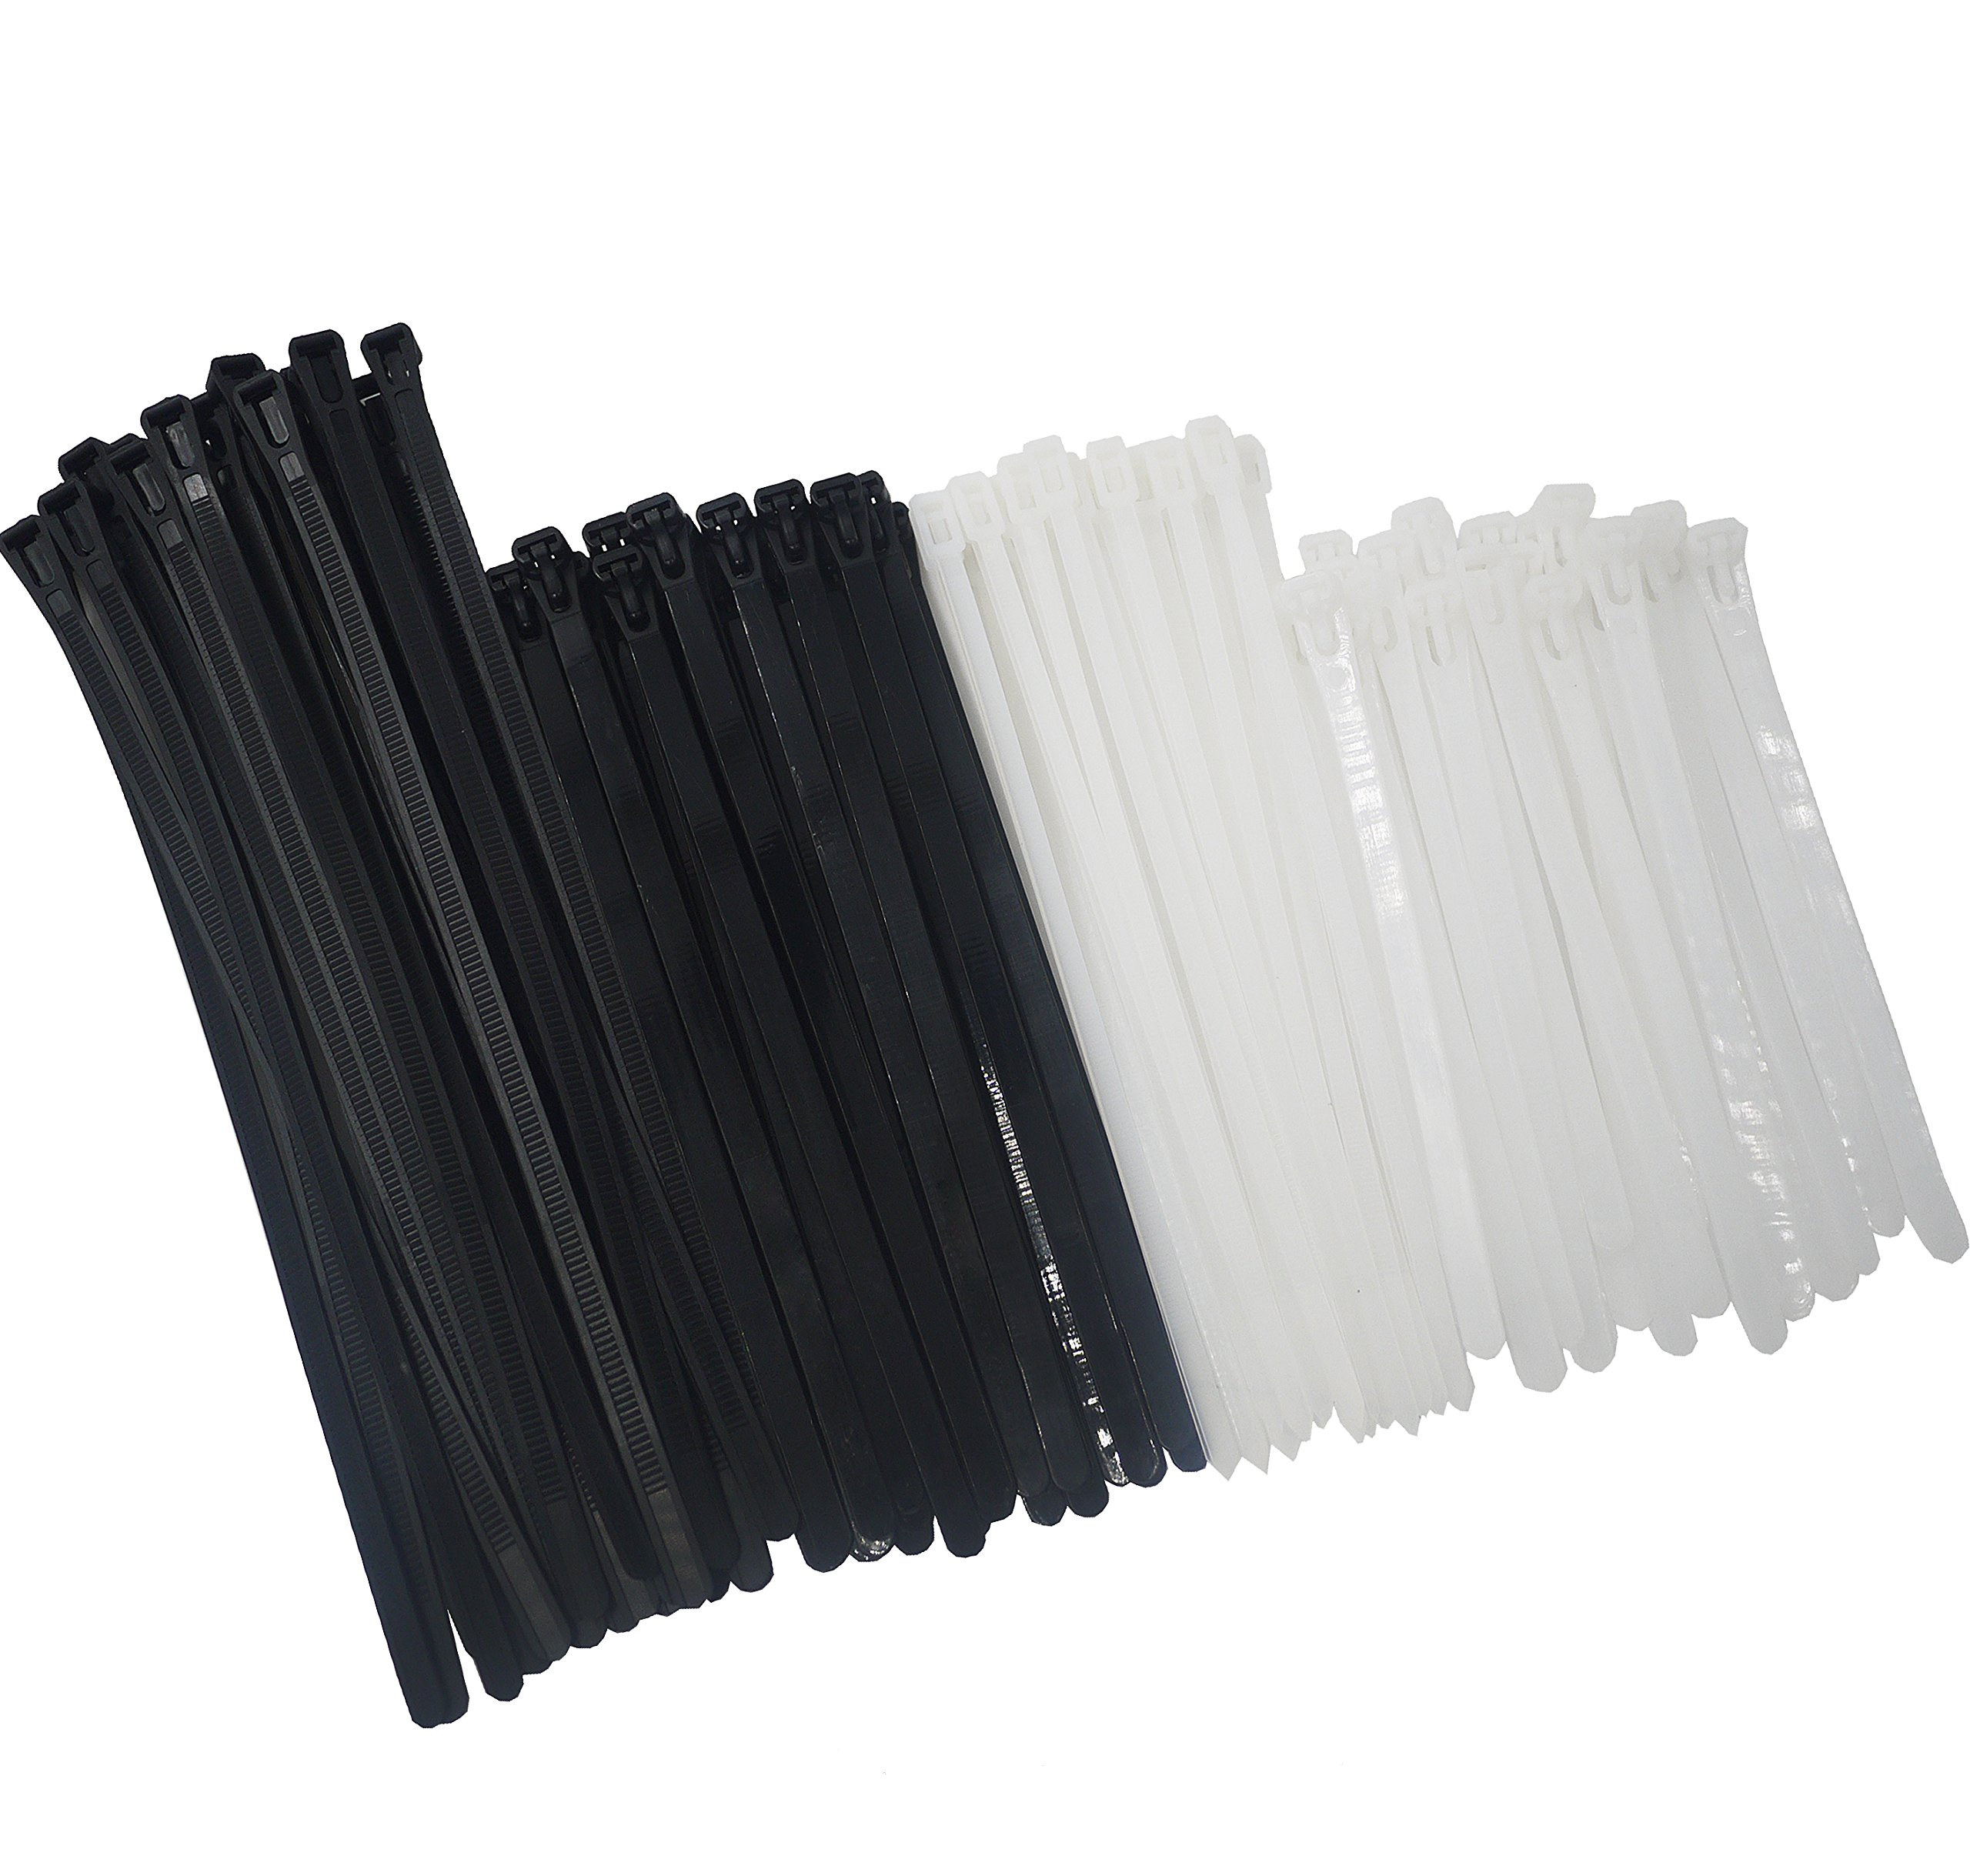 Reusable Releasable Adjustable Nylon Cable Zip Ties 100 PACK 6+8(Small)+8+10 Inch Assorted Black & White, Self-Locking Plastic Wire Ties for Organization, Plant ties, 50 Lbs Tensile Strength